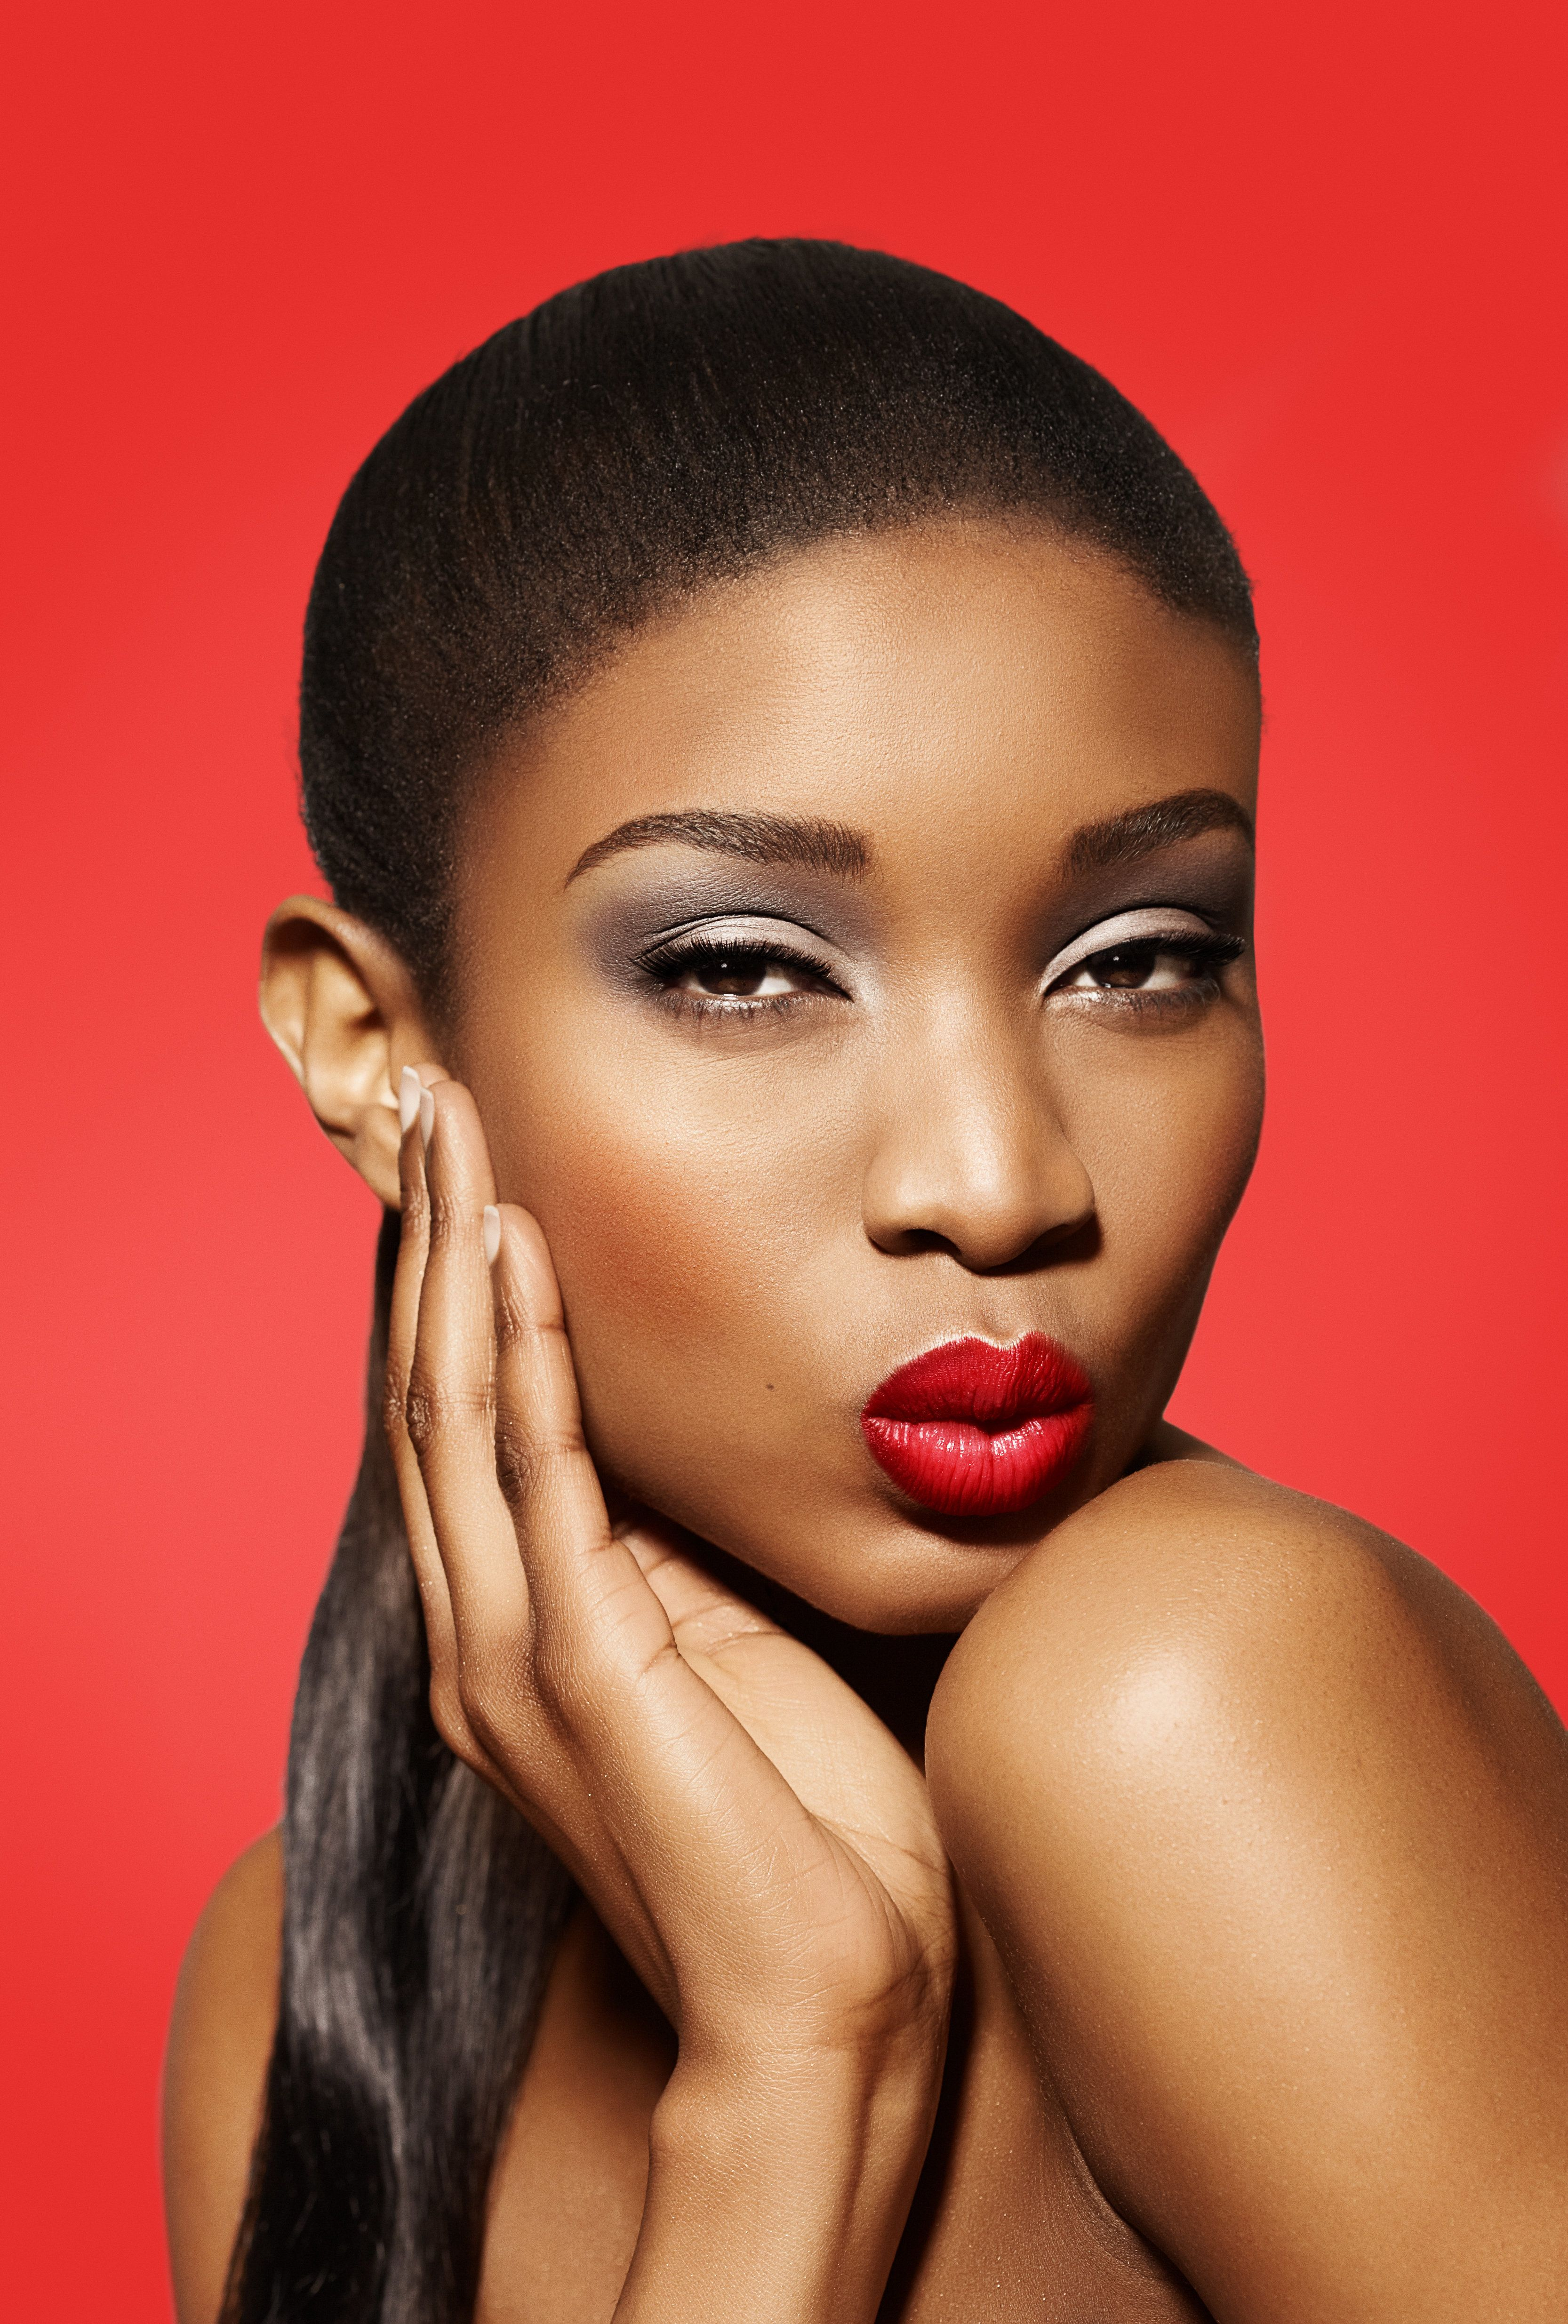 African model with red lipstickon red background.